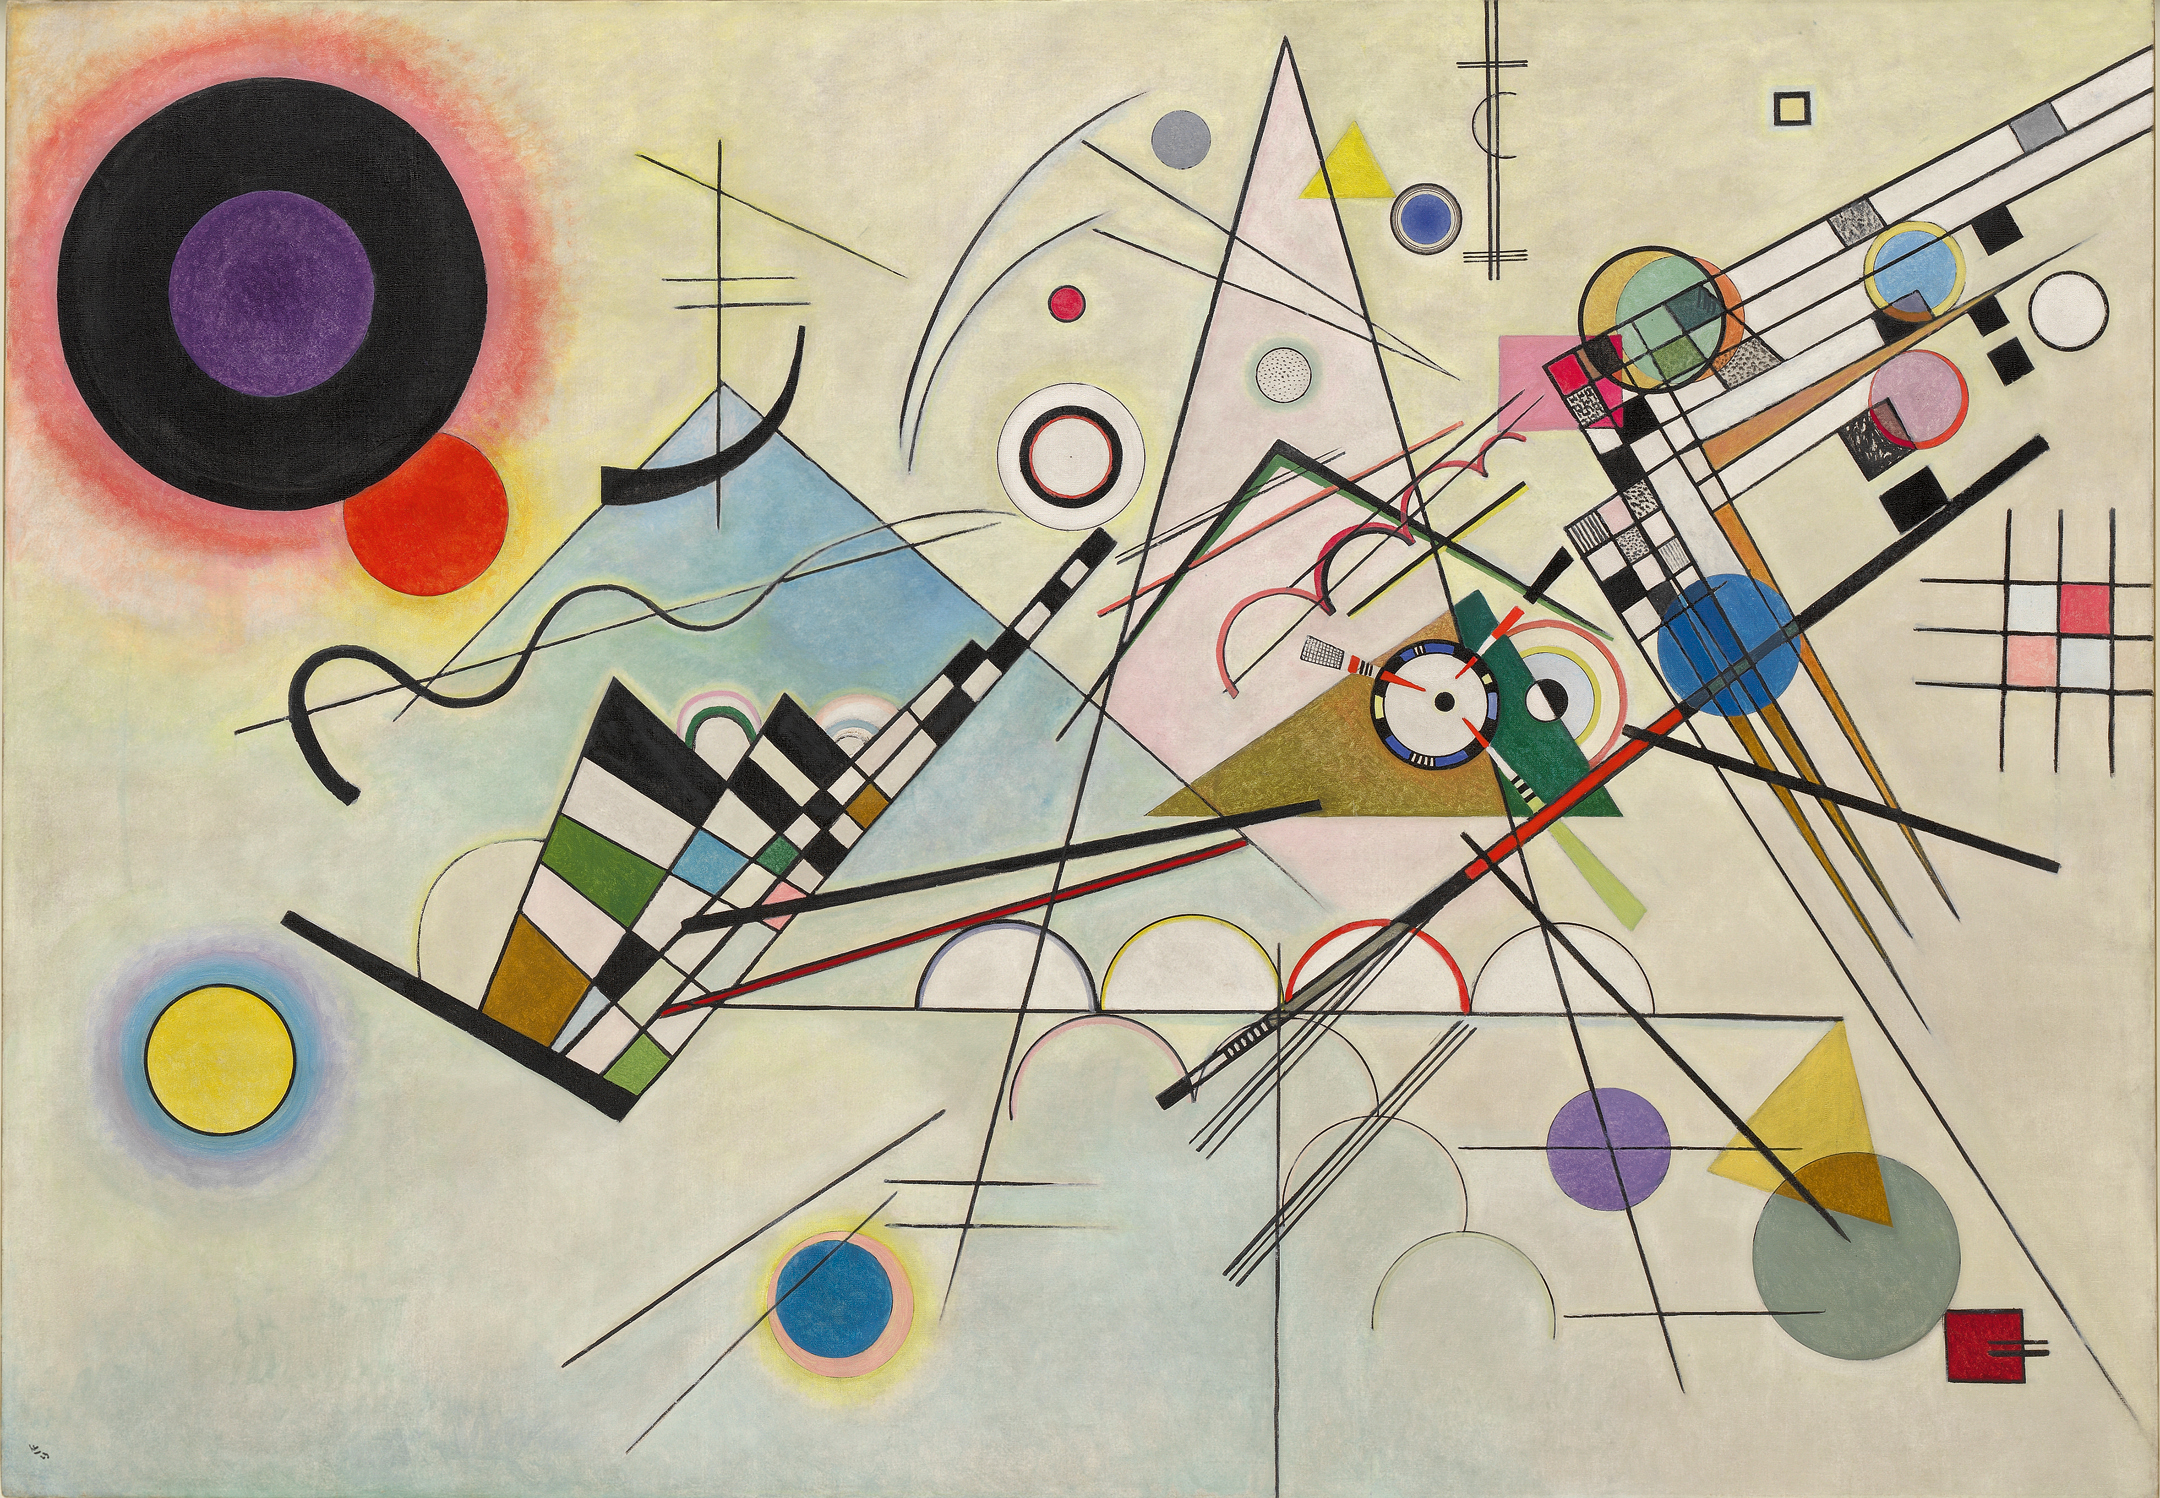 Composition 8 (1923), by Vasily Kandinsky. Oil on canvas, 140 x 201 cm. Solomon R. Guggenheim Museum, New York. © 2016 Artists Rights Society (ARS), New York/ADAGP, Paris.